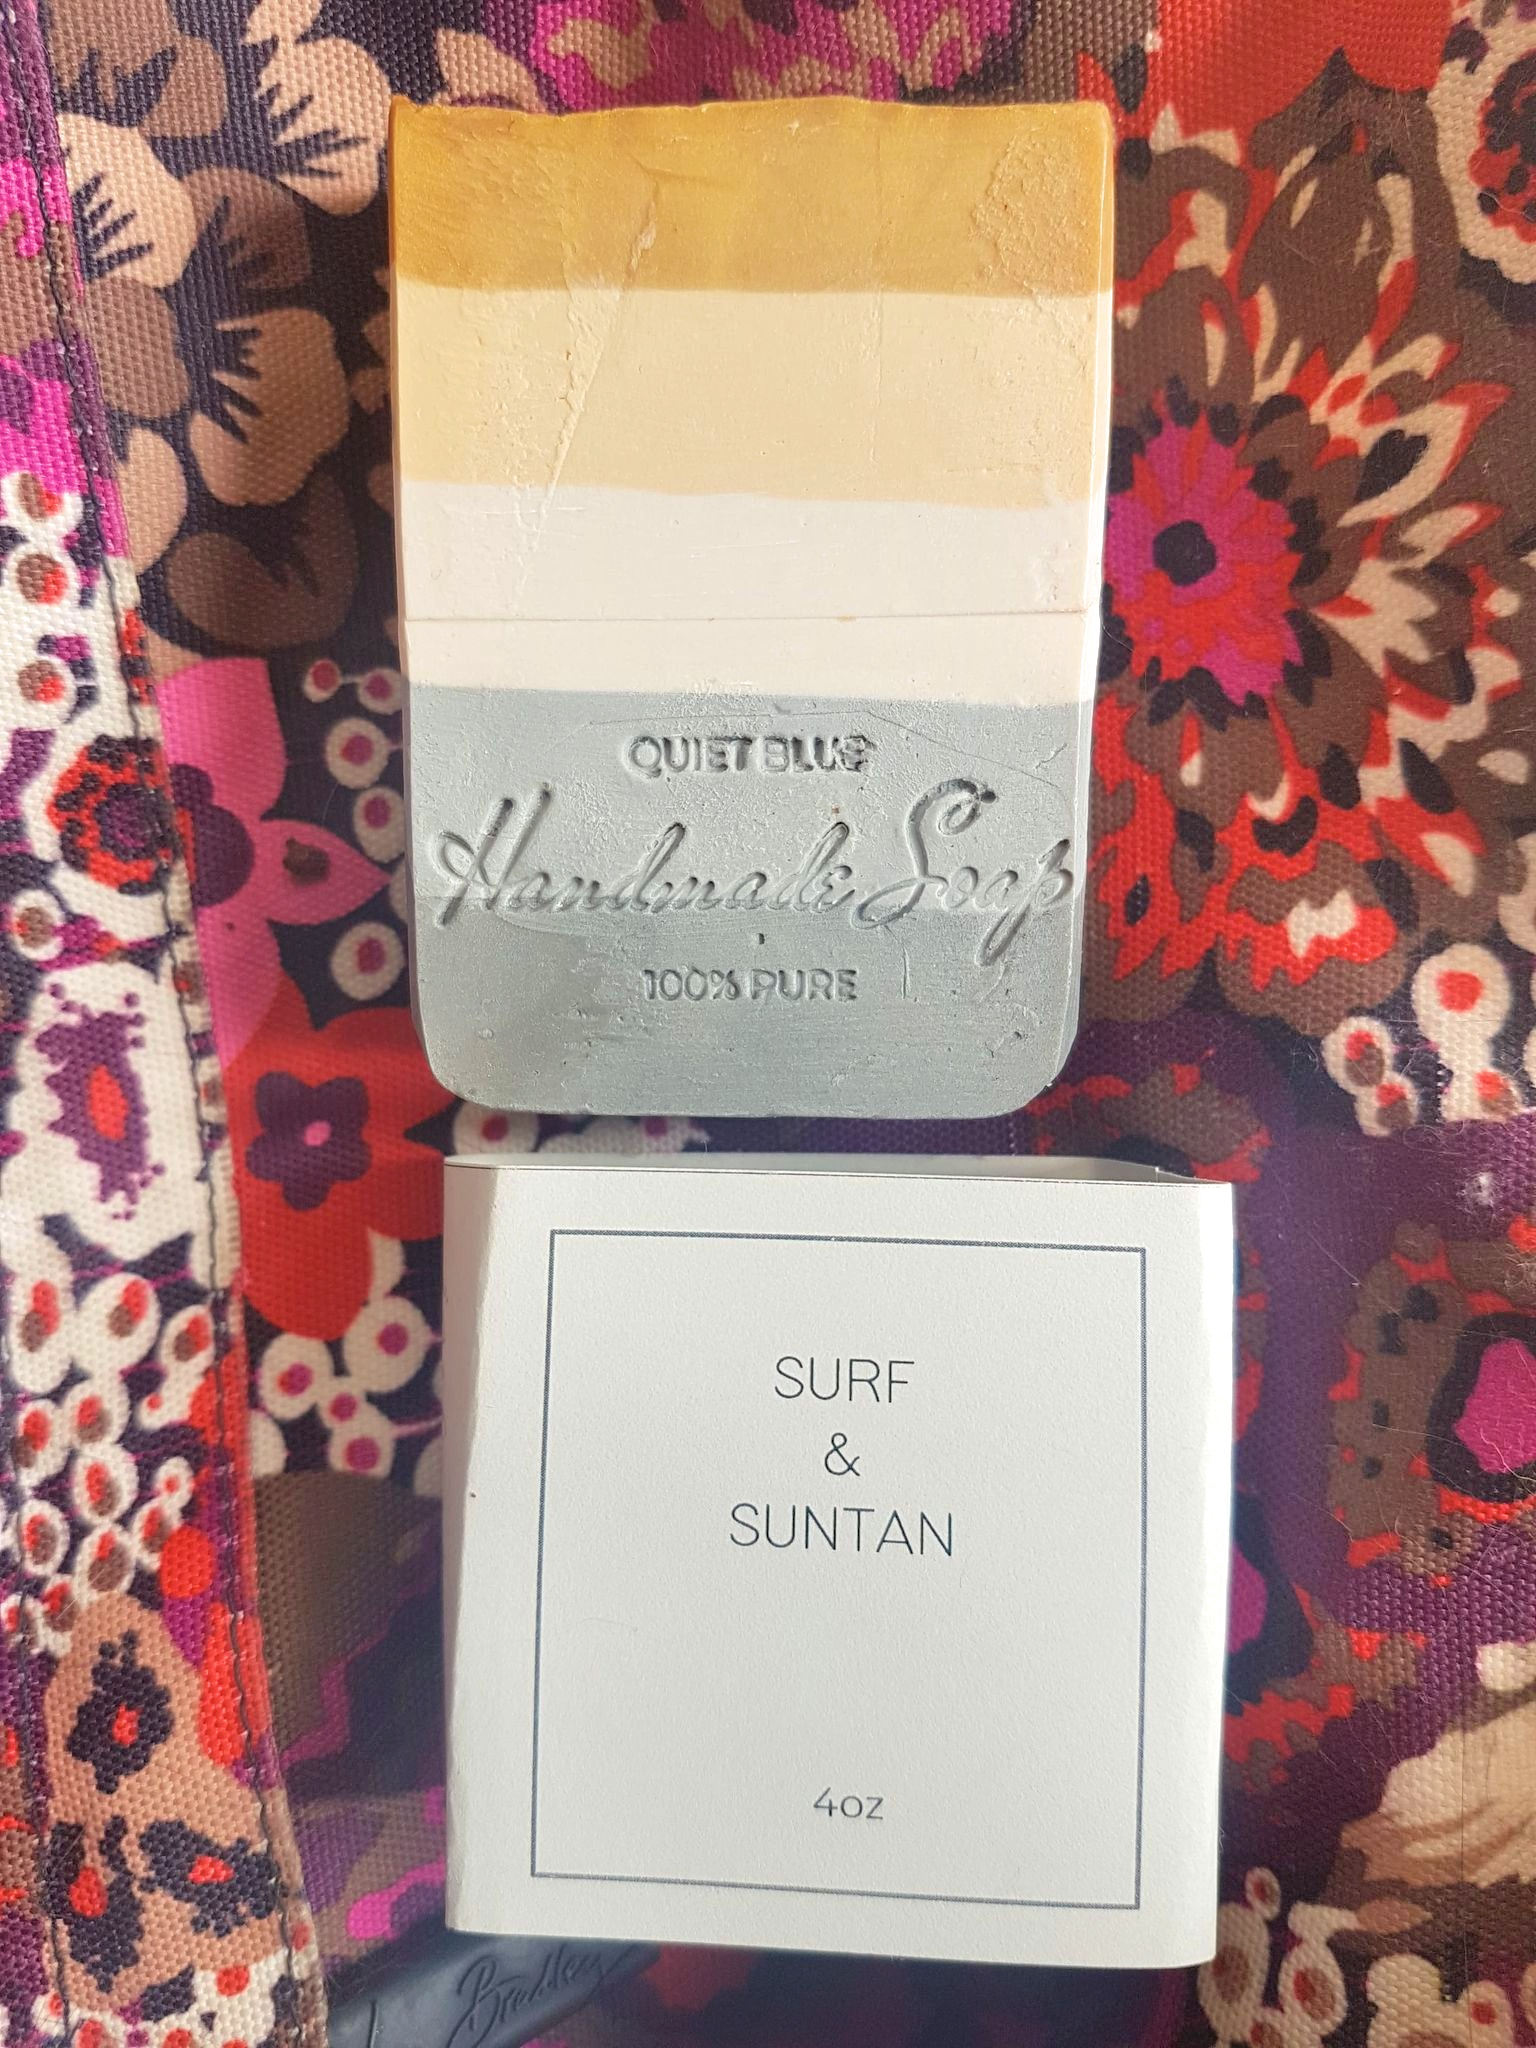 Quiet Blue Eco Natural Handmade Soap in Surf & Suntan. The soap has five layers of colour: dark grey, light grey, cream, cappuccino, and tan